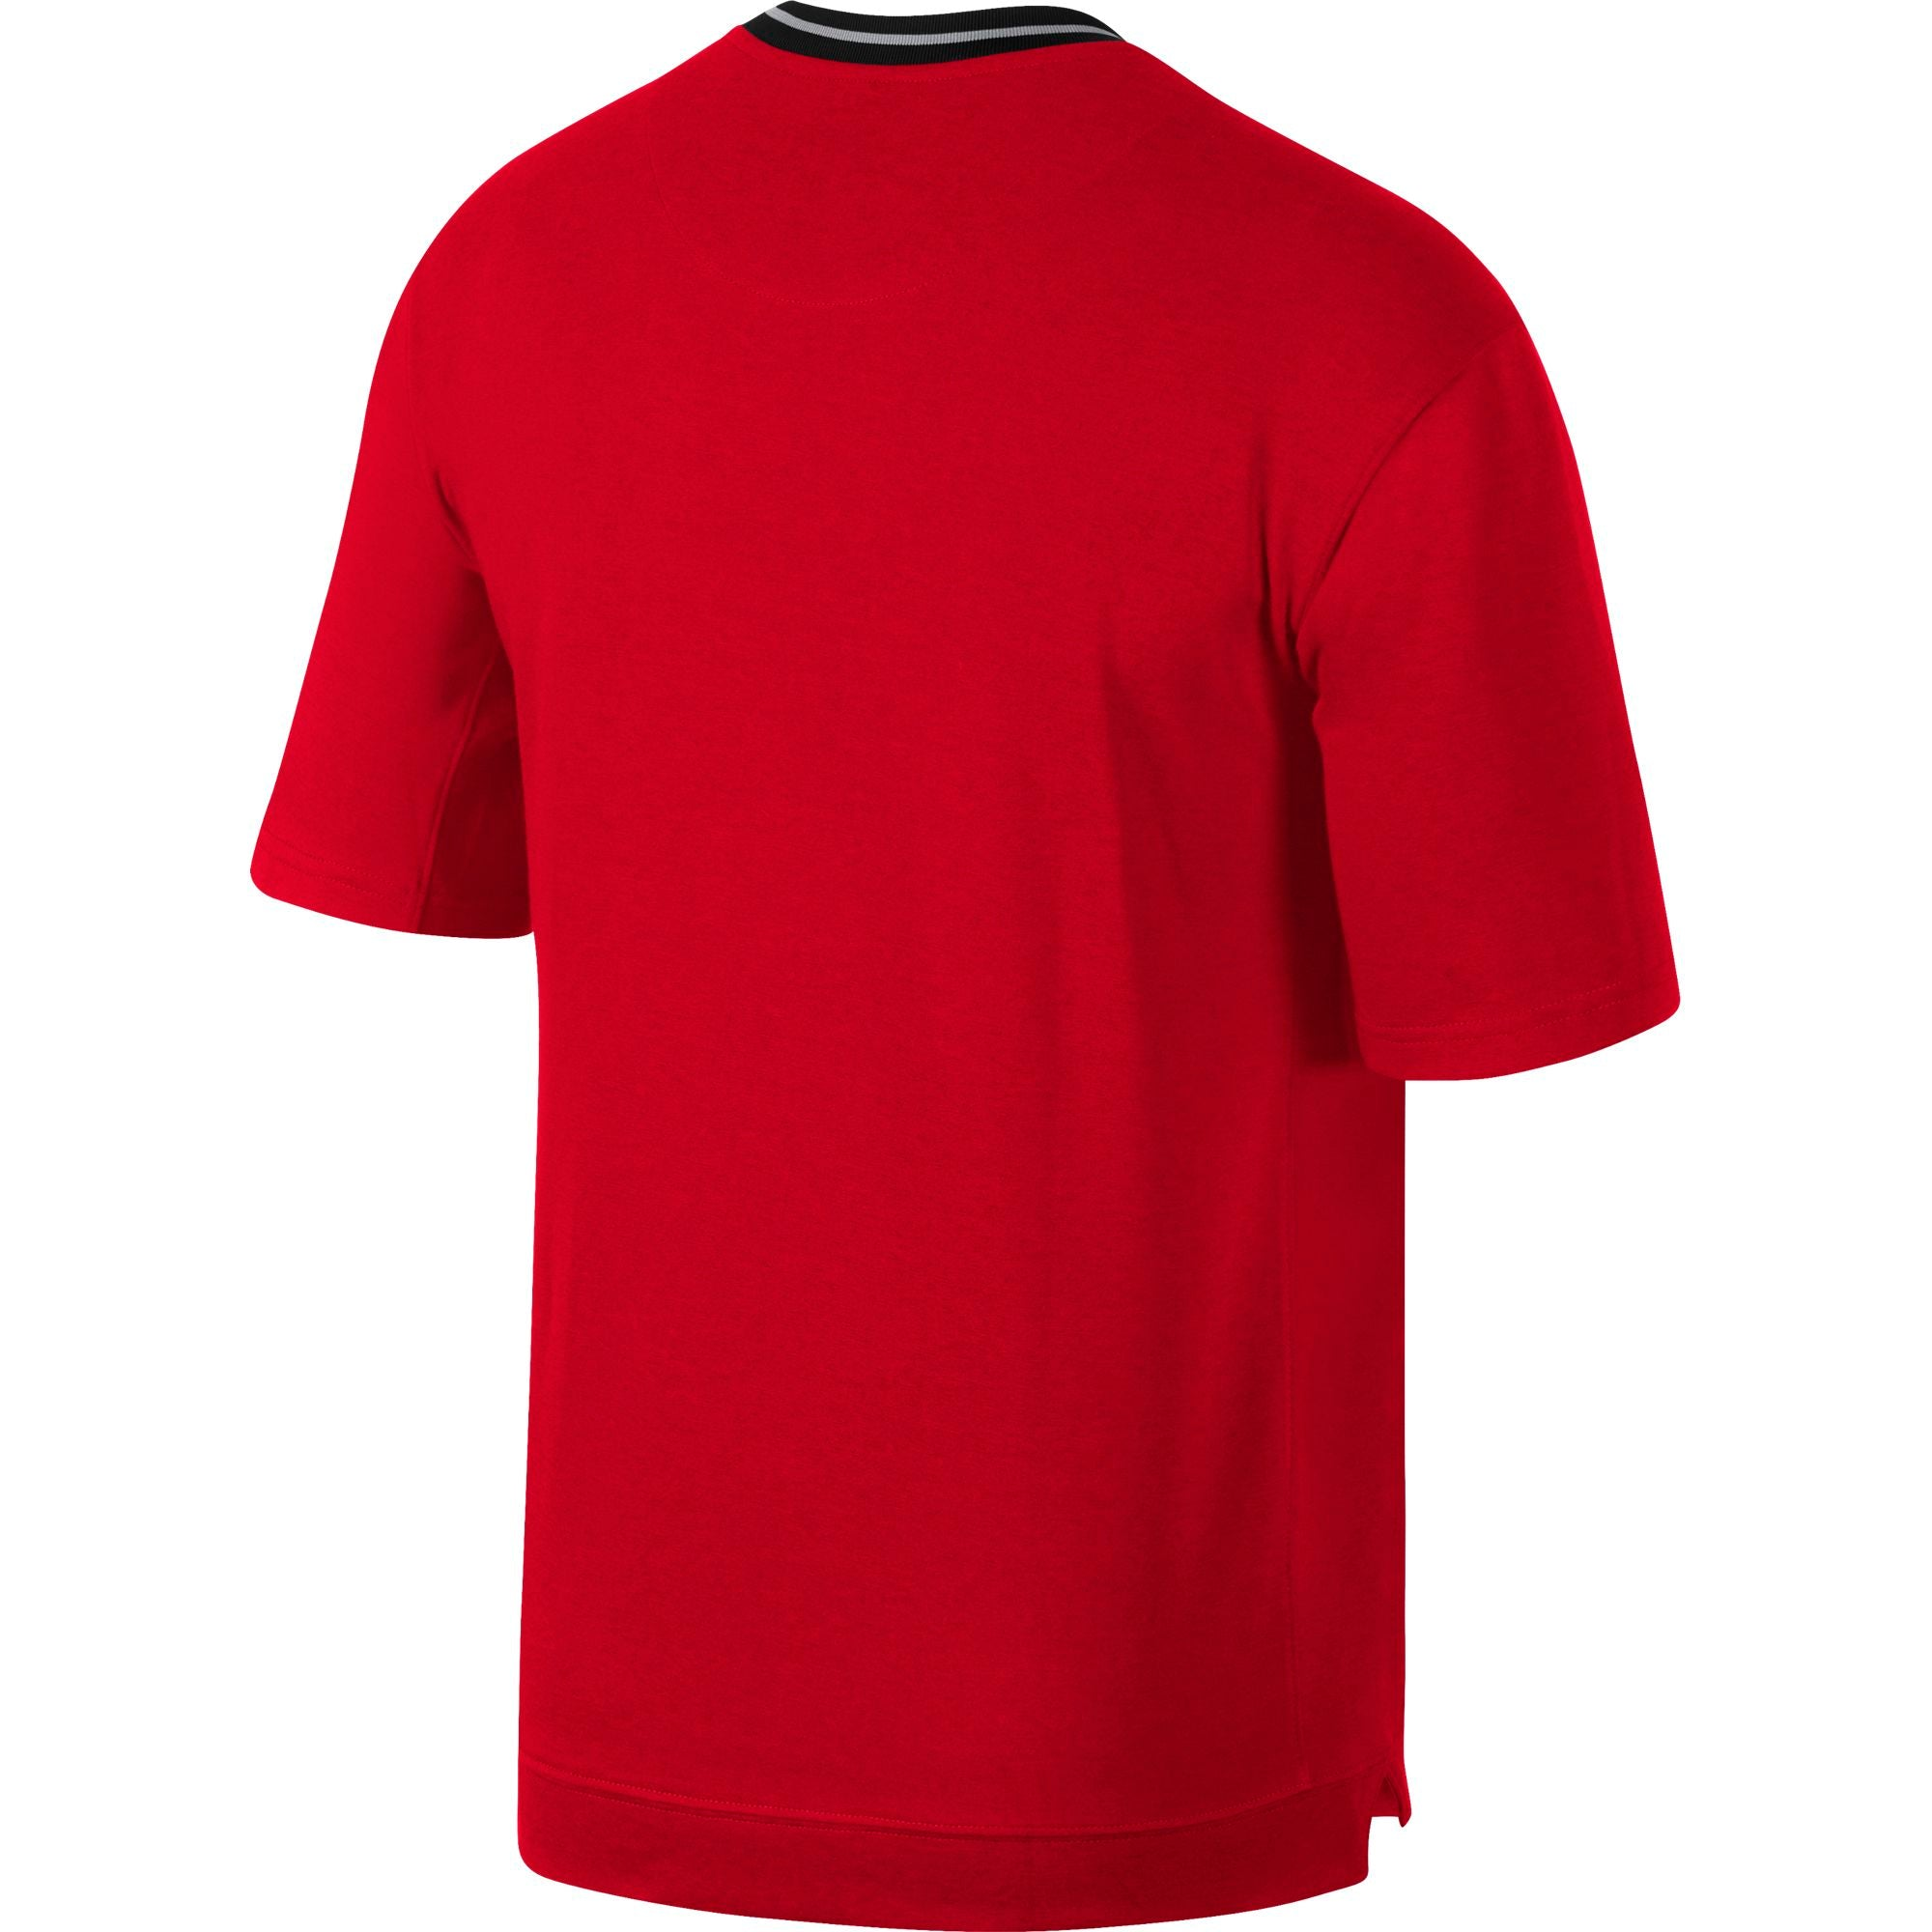 Nike Basketball Dry Fit Short Sleeved Top - University Red/Black